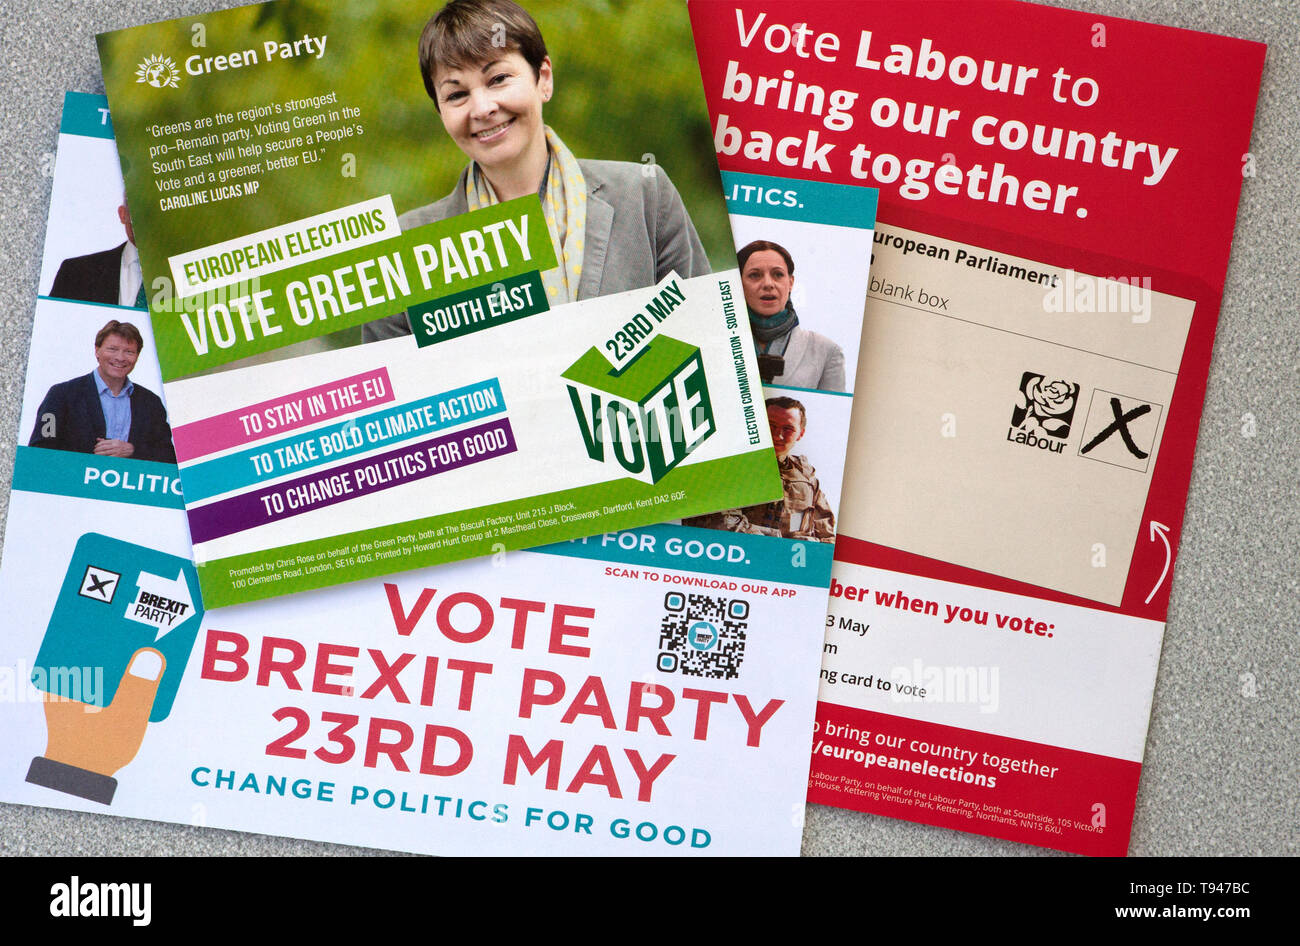 European Elections May 23rd 2019 leaflets - Stock Image